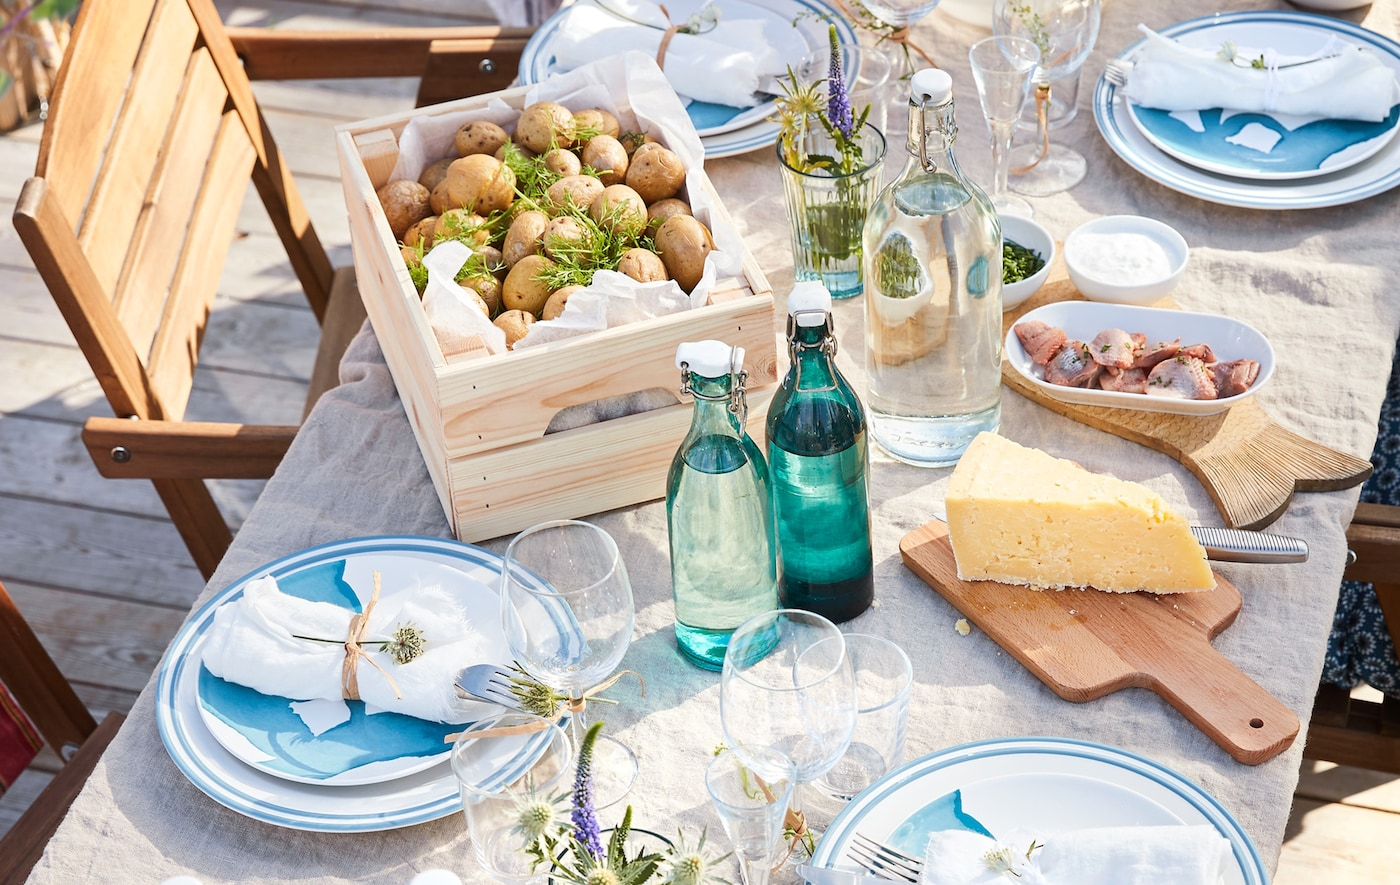 A close up of an outdoor dining table with dinnerware, glasswar, food and drink.